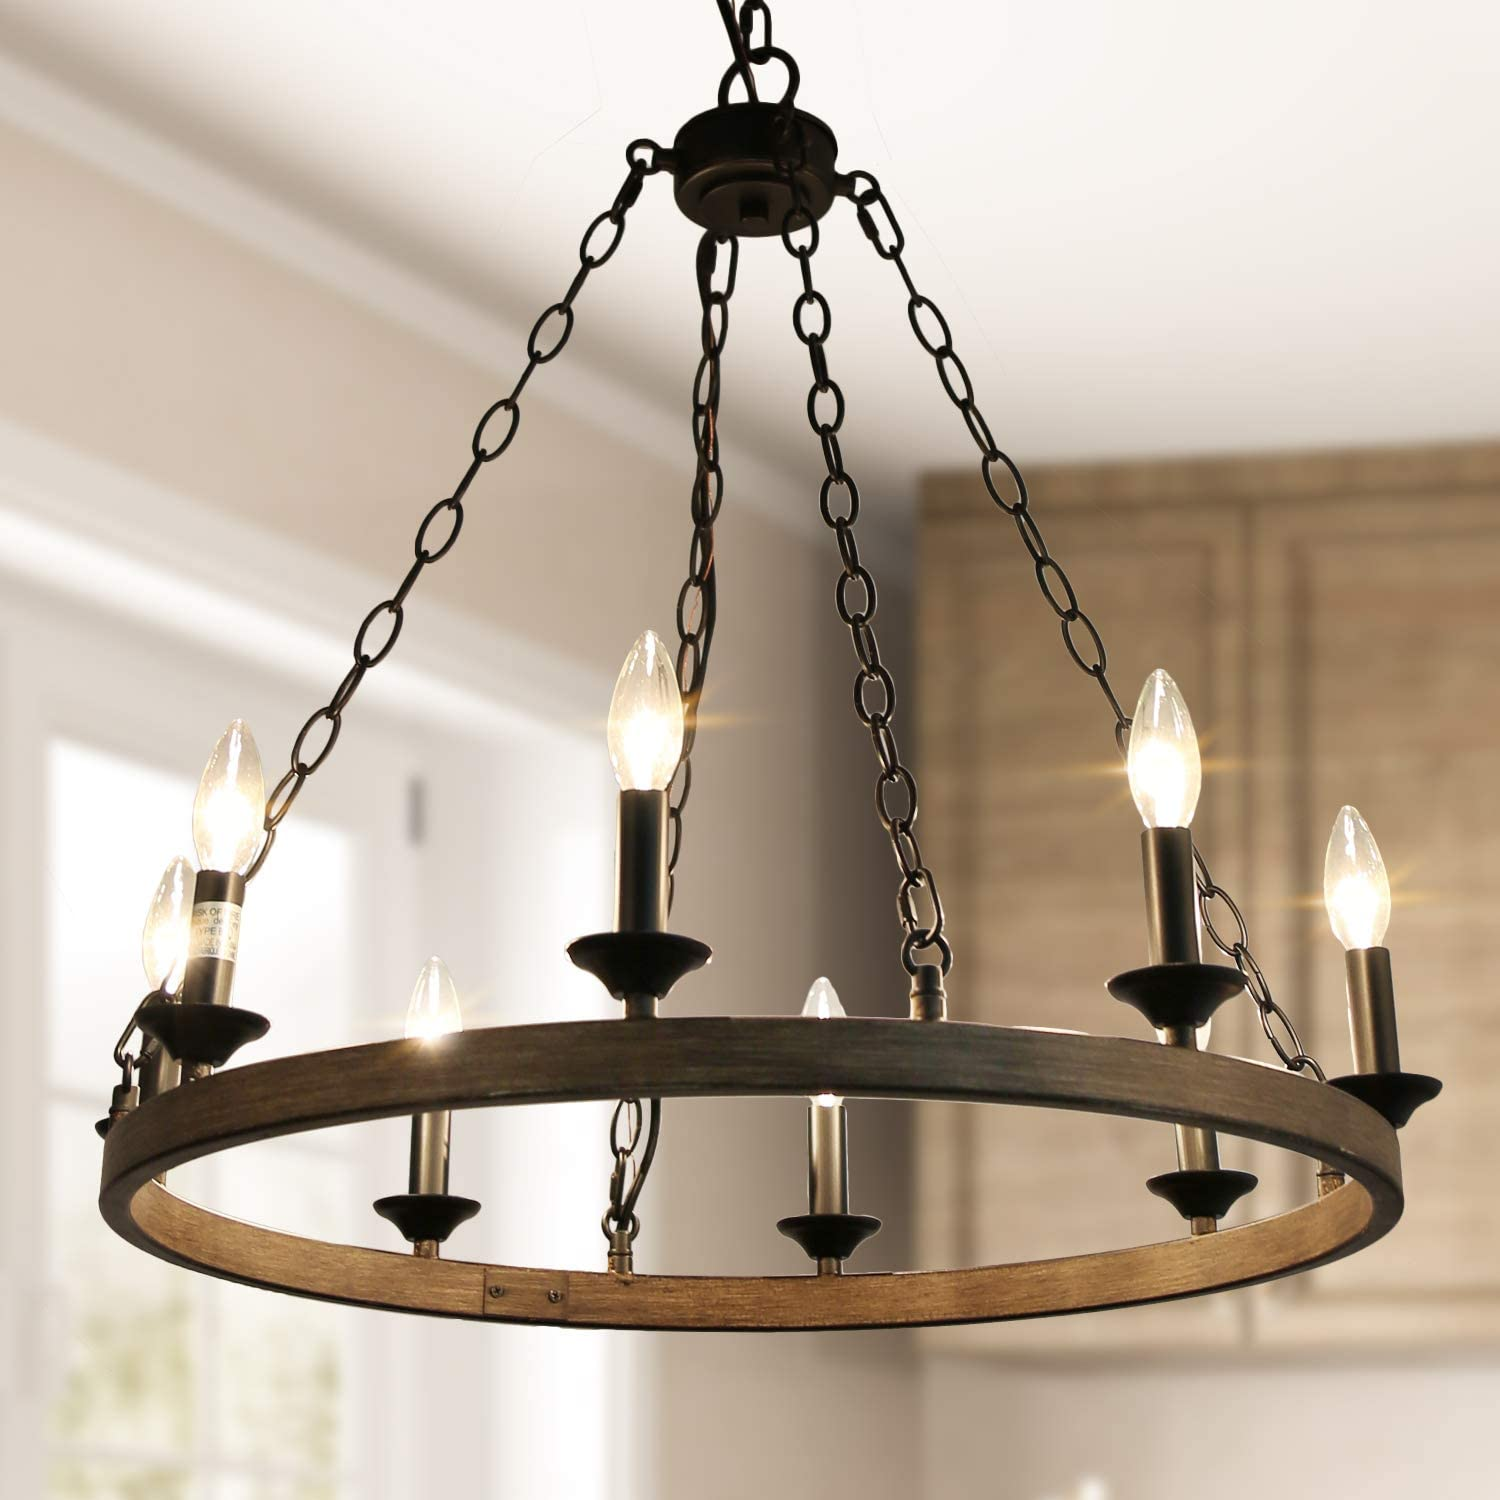 Amazon Com Log Barn Farmhouse Chandelier Dining Room Lighting Fixtures Hanging In Rustic Faux Wood Metal Finish Wagon Wheel Chandelier For Kitchen Island Foyer Bedroom Home Kitchen